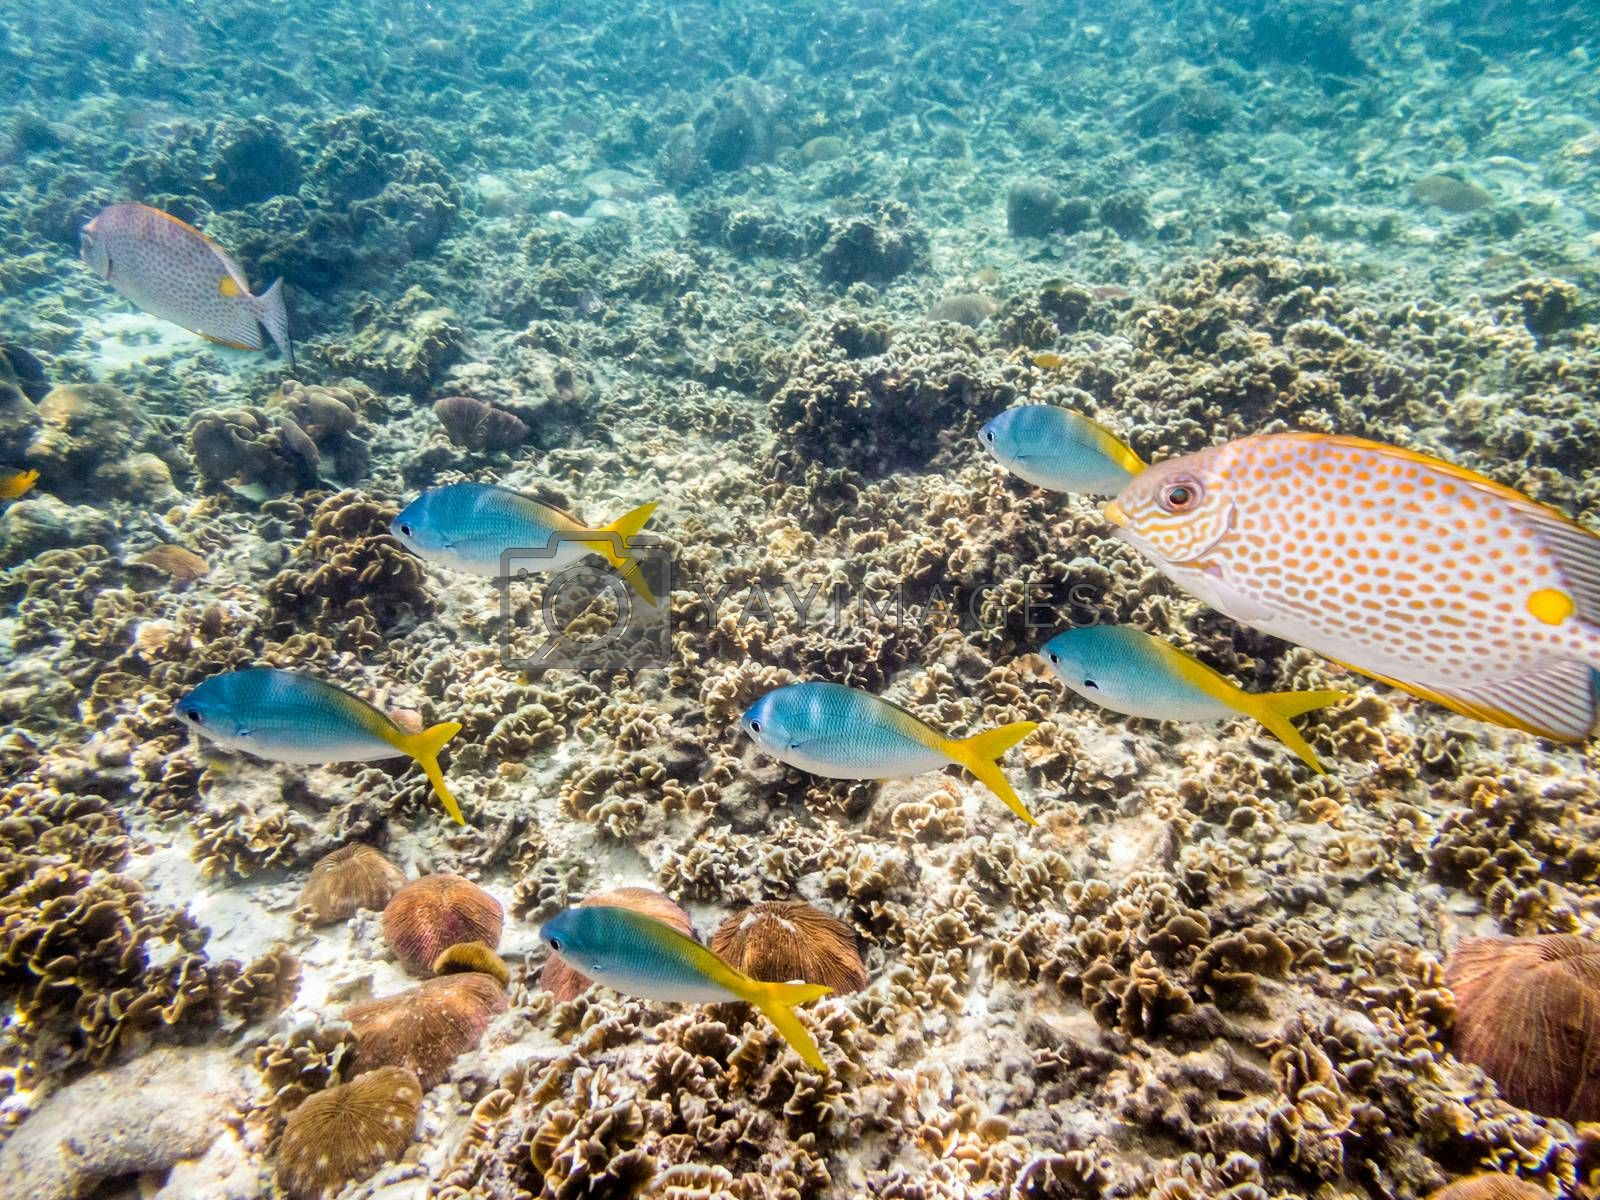 Underwater photos of group Yellowback Fusilier or Caesio Xanthonota is a beautiful sea fish swimming above the coral reefs at Koh Nang Yuan island in Thailand